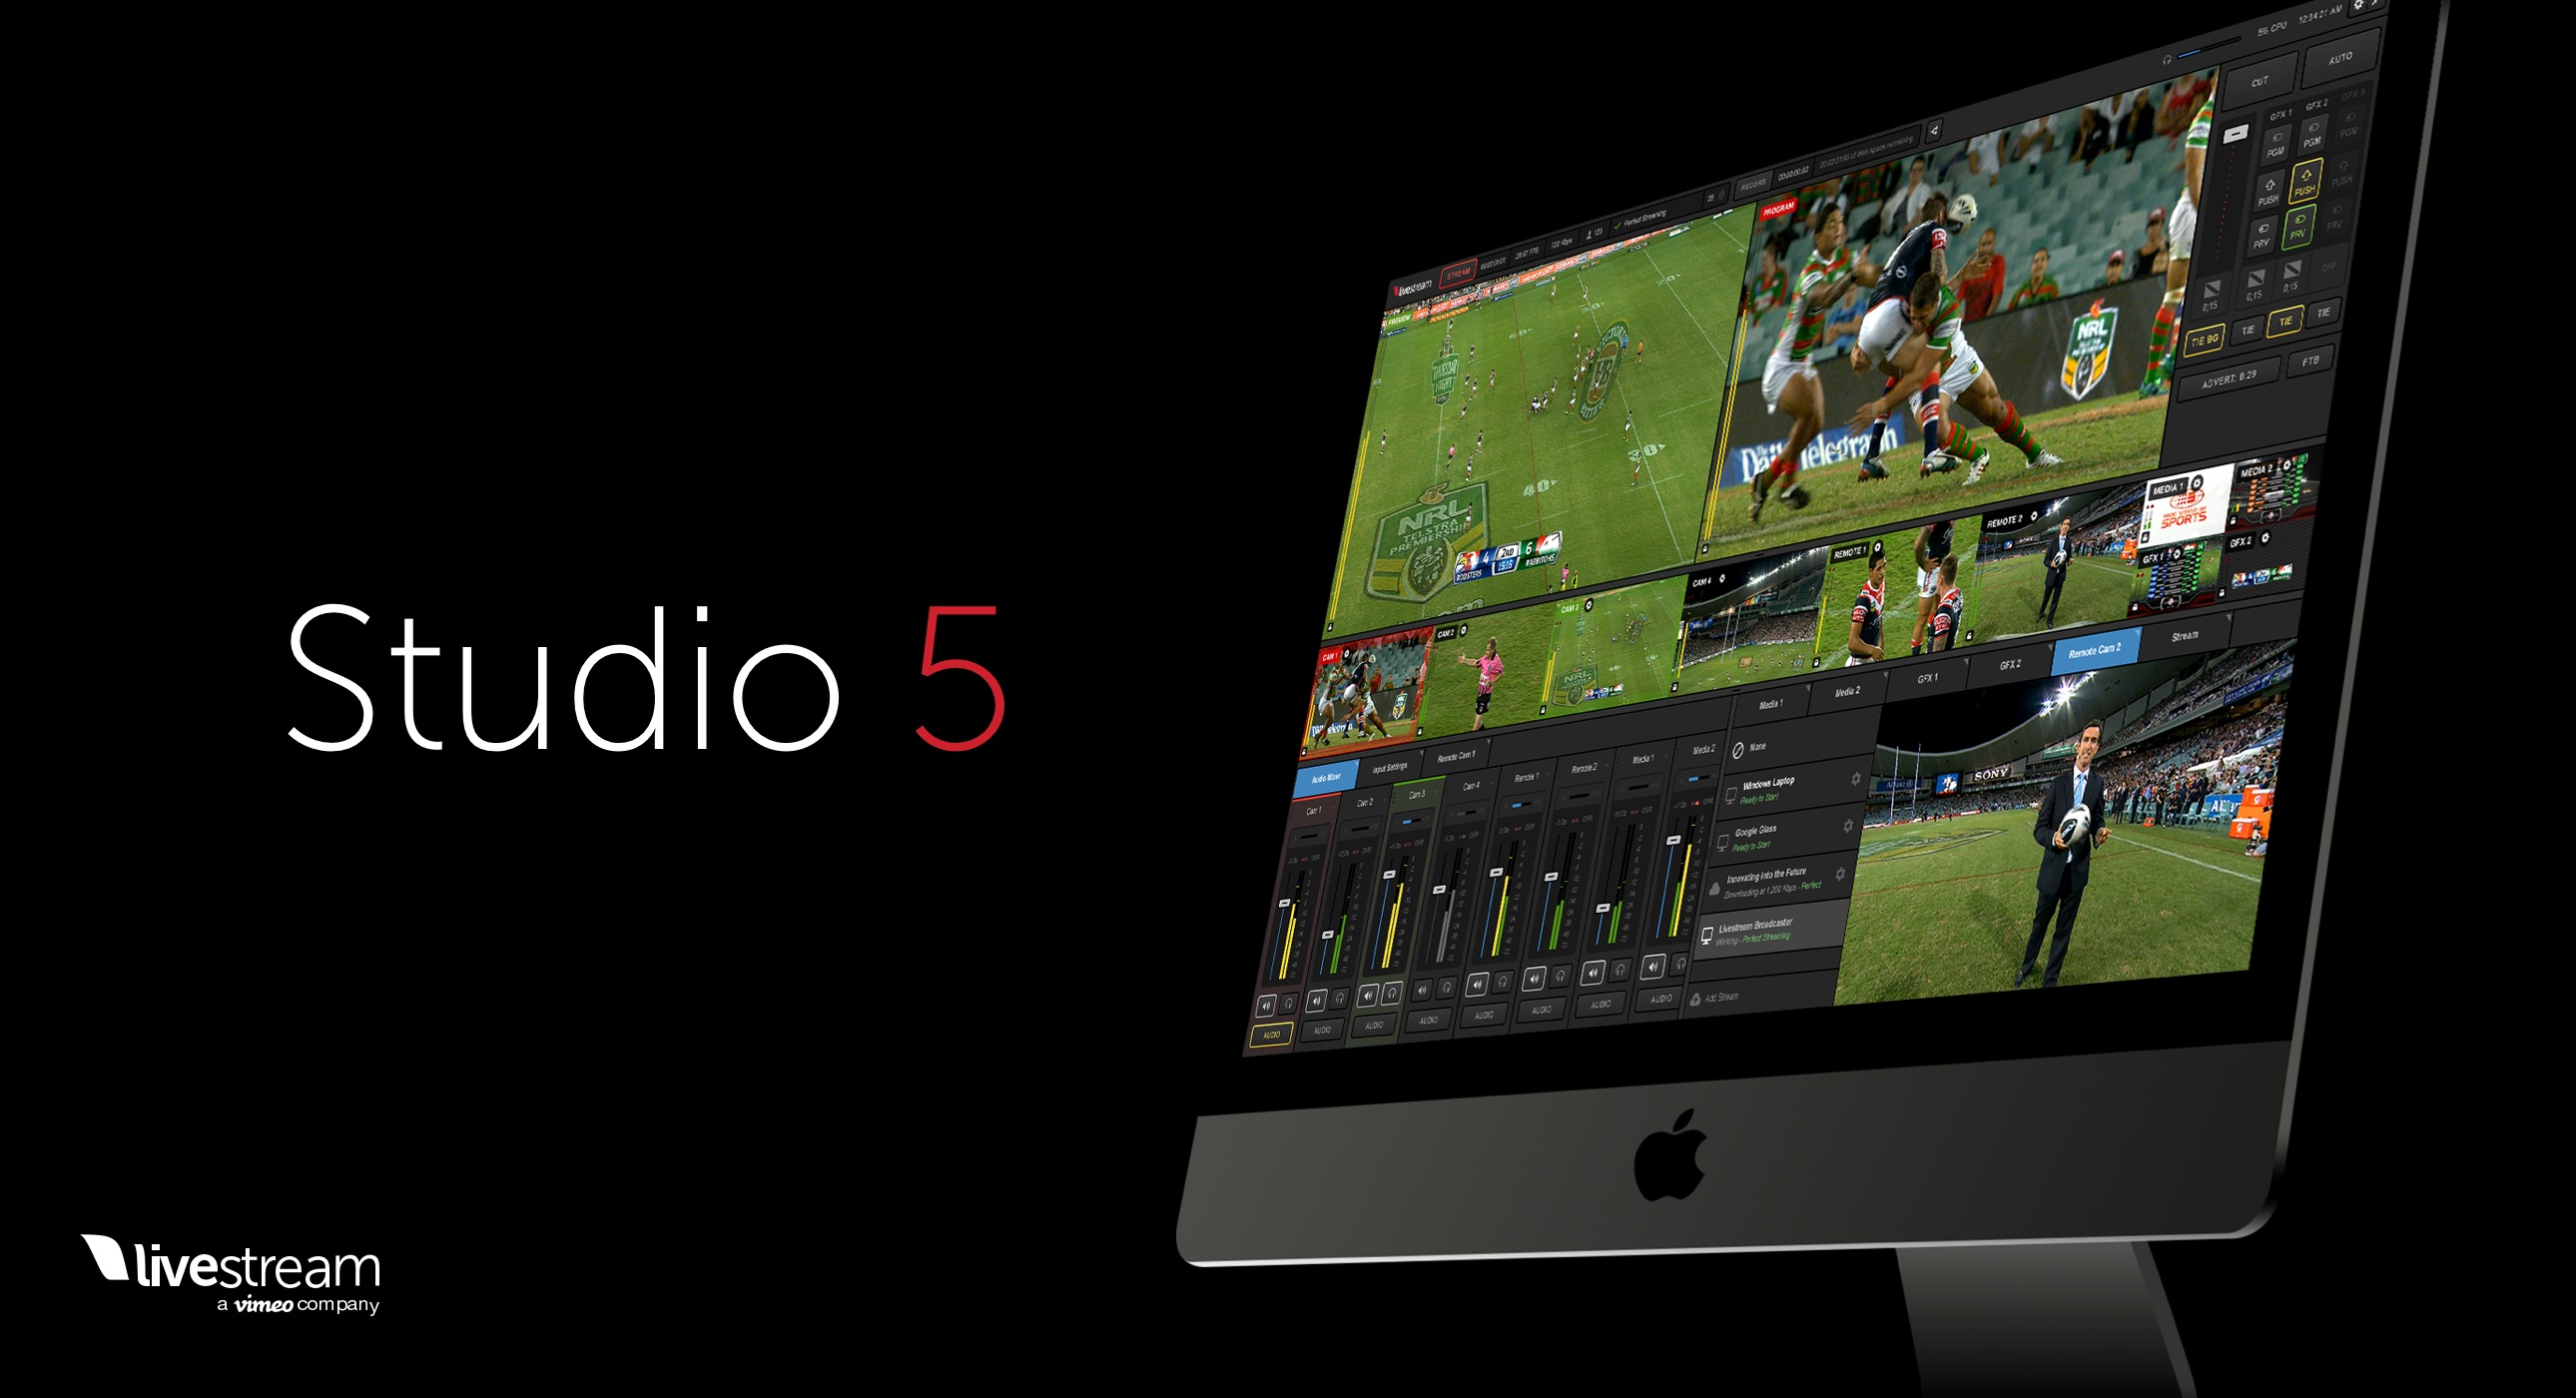 Livestream 2018 NAB Updates: Studio for Mac, New Hardware, OTT Live